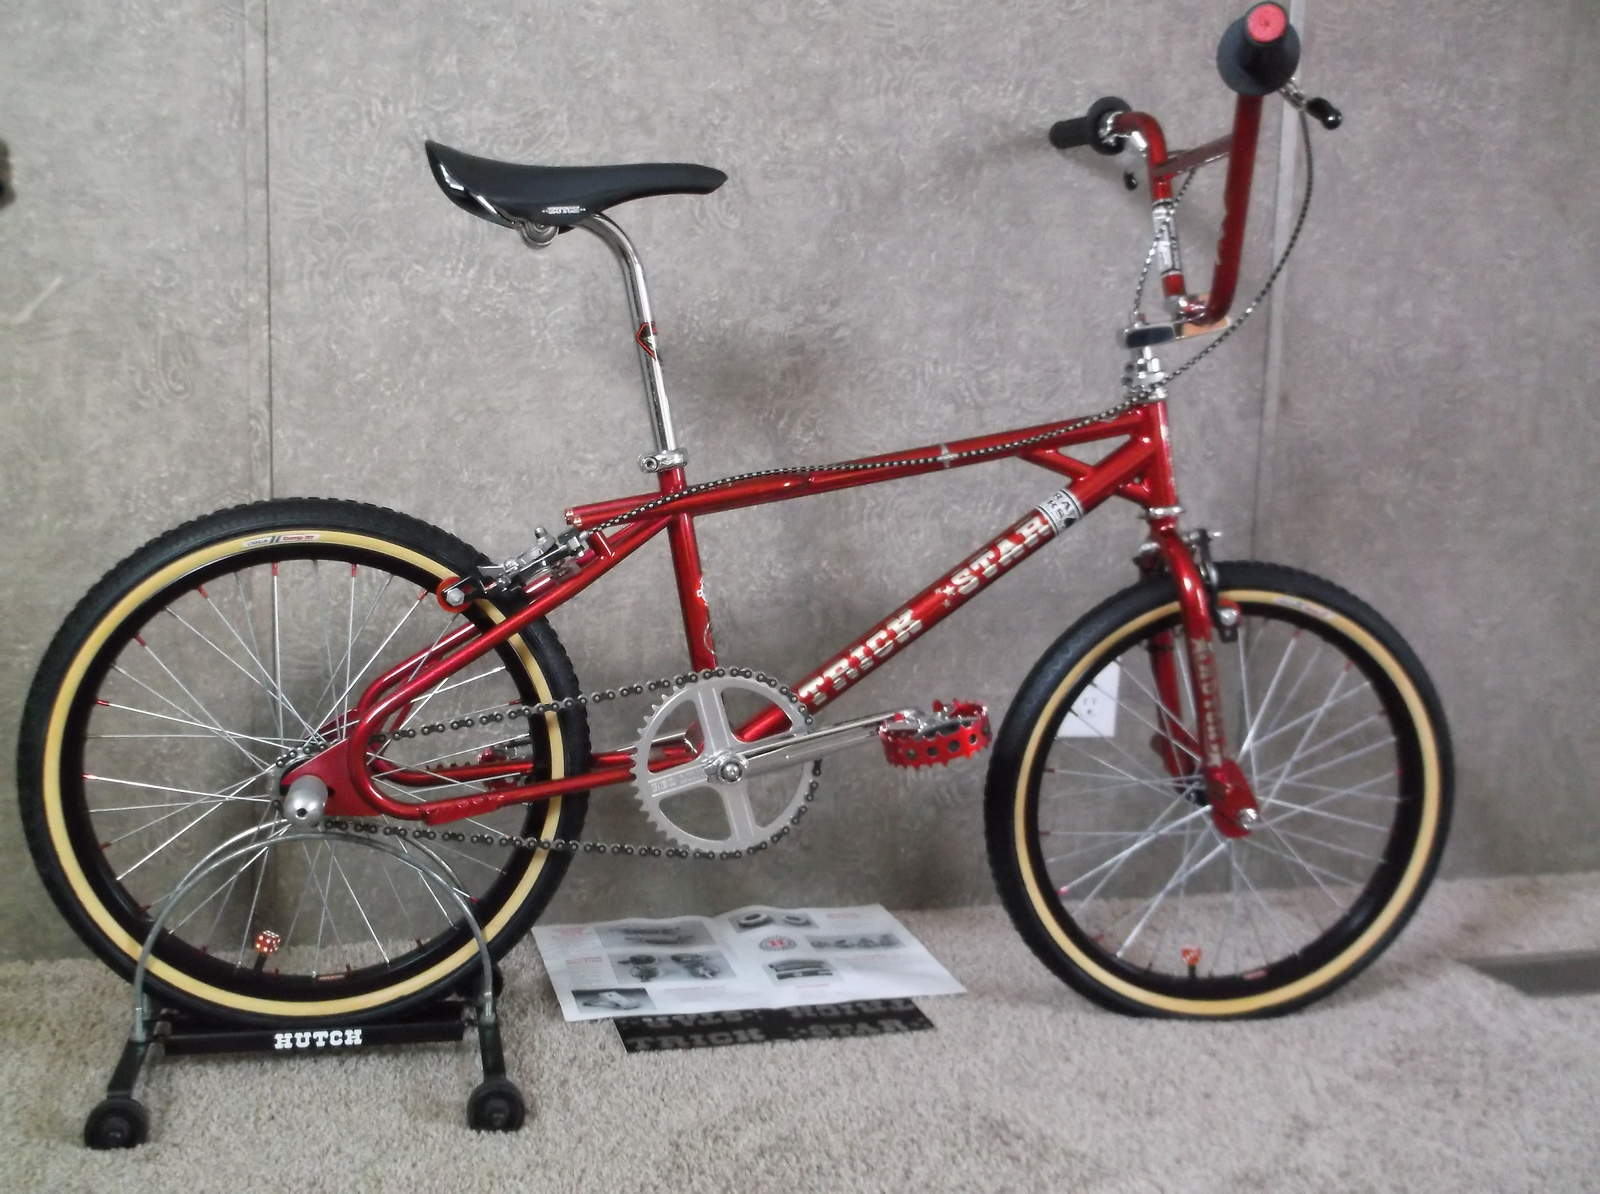 http://uploads.bmxmuseum.com/user-images/81705/00358775590a4.jpg